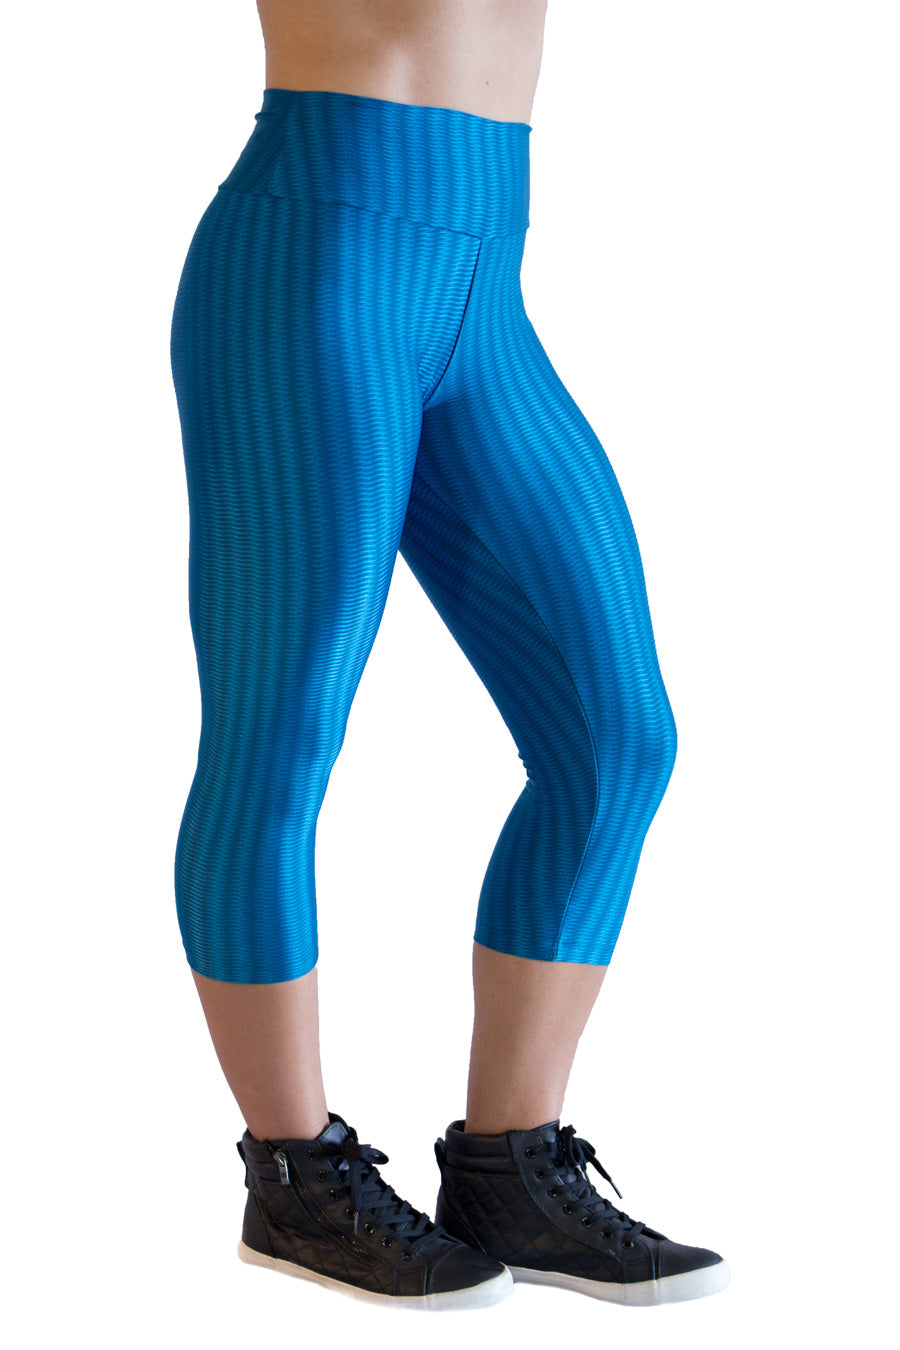 Azul do Mar Cirre Capris - women yoga clothes beBrazil